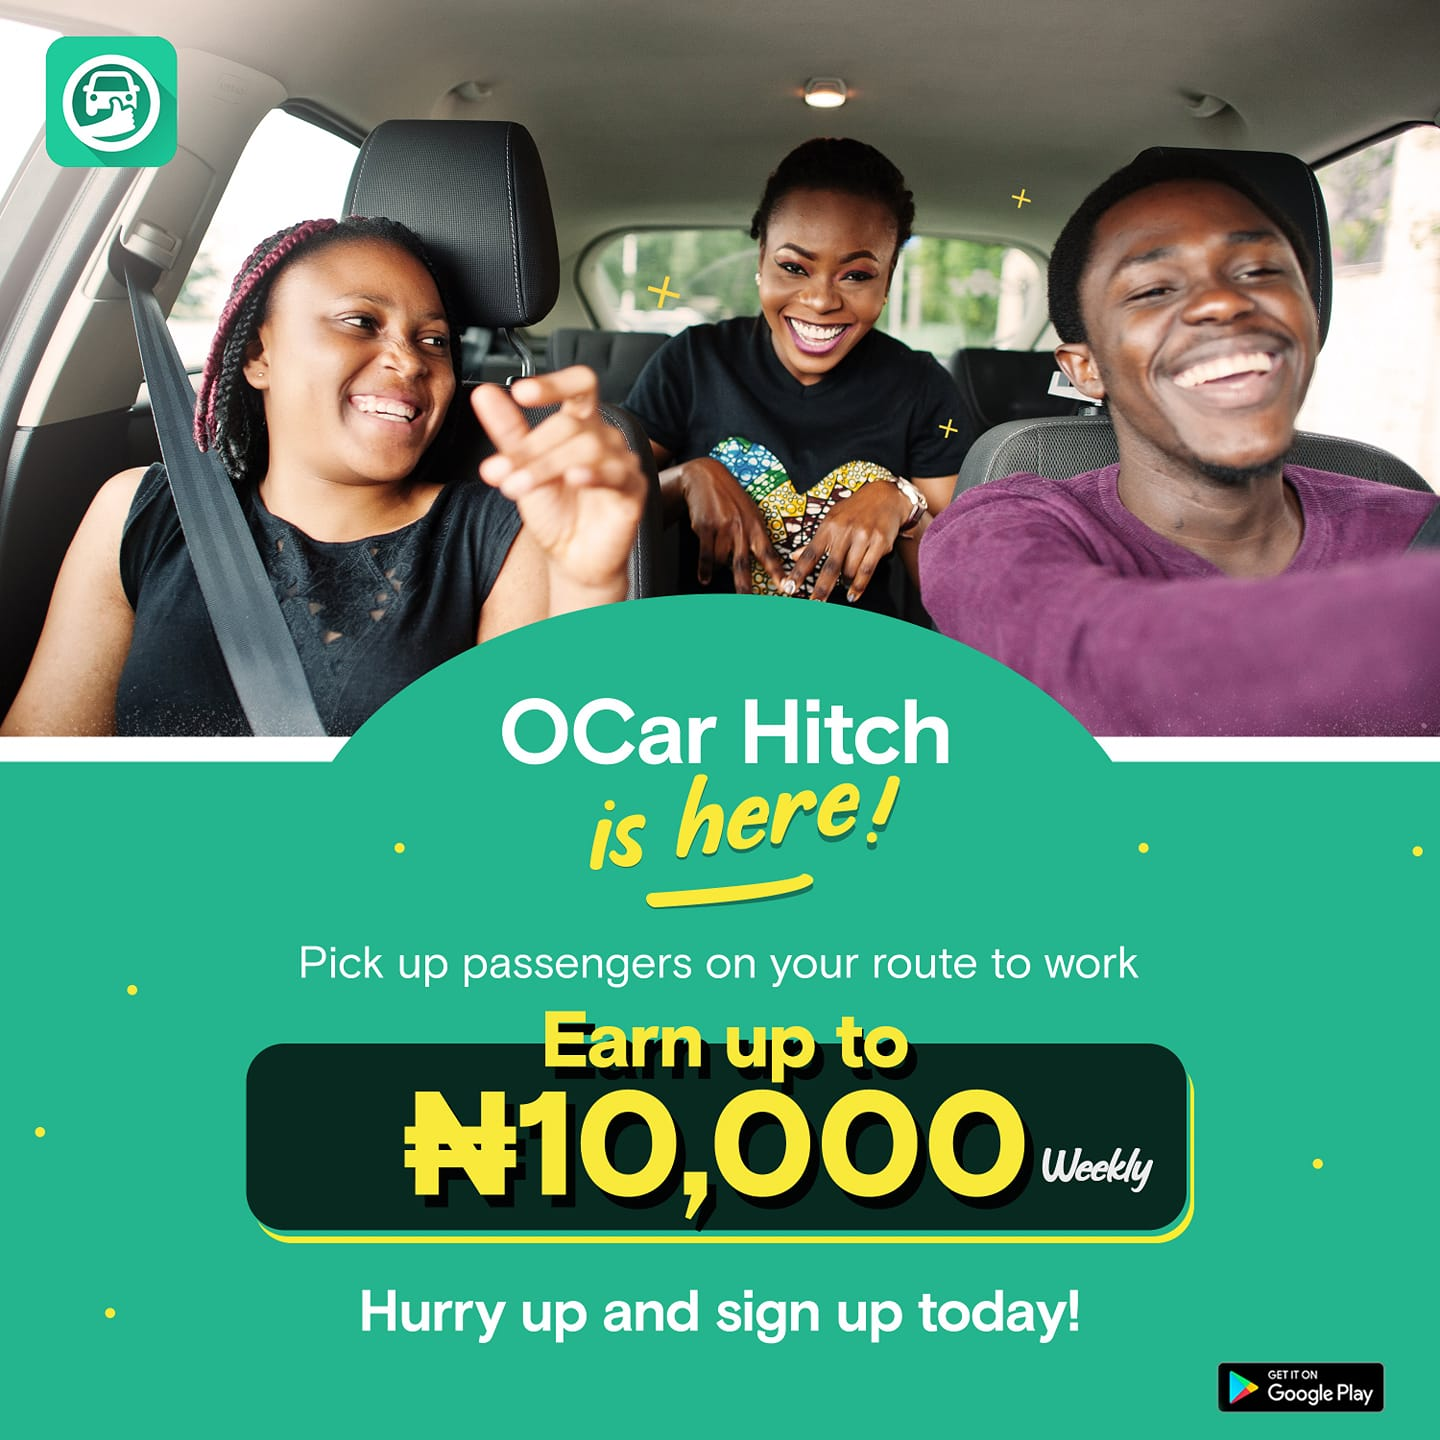 Share Your Ride to Work and Earn an Extra Income of N10,000 Weekly In Oride OCar Hitch.